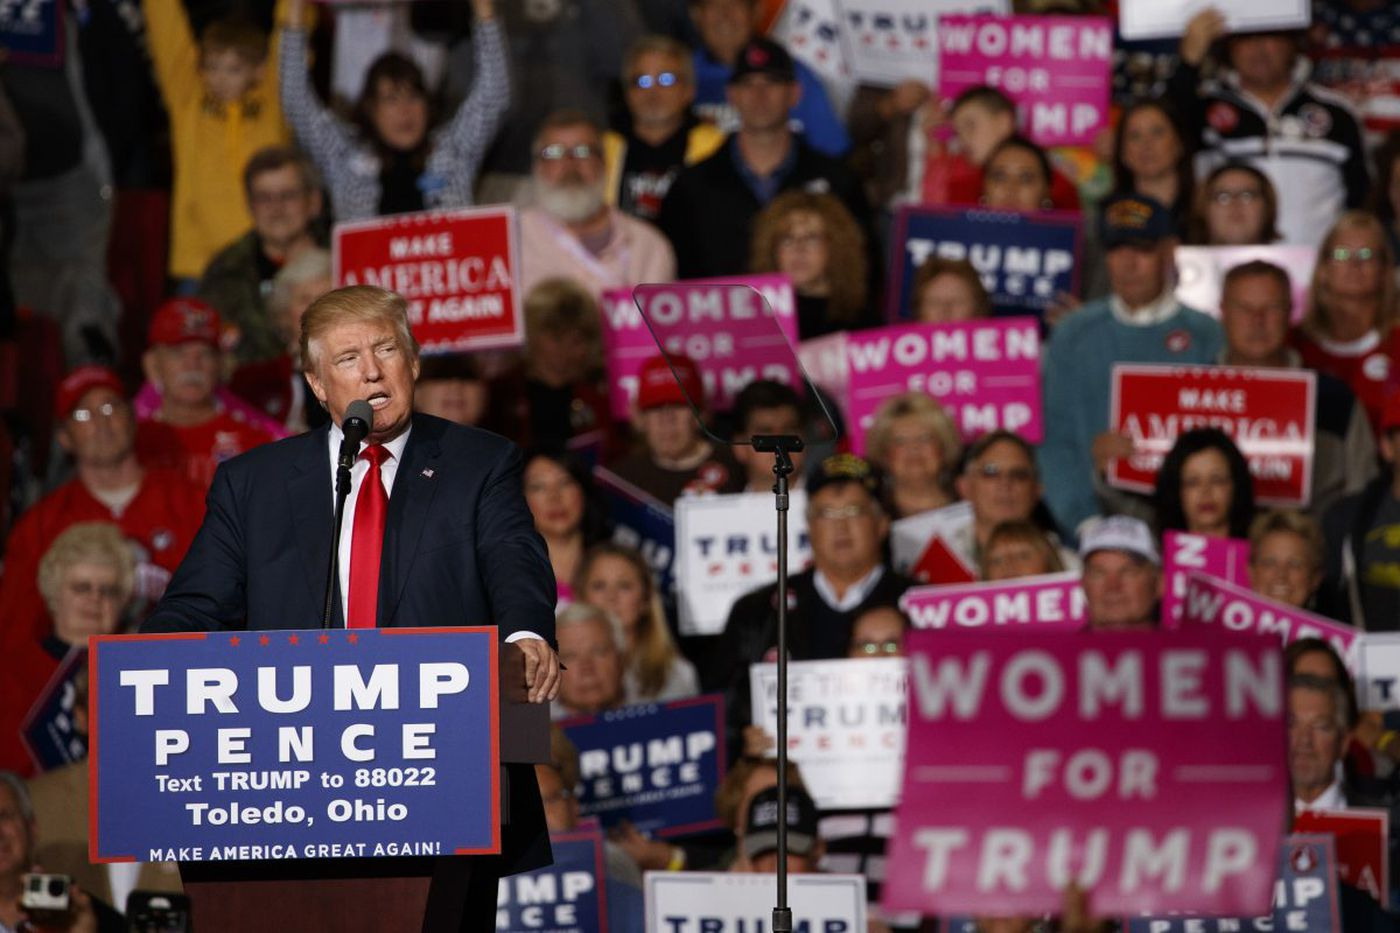 Cities hosting Trump campaign rallies saw uptick in assaults, study finds